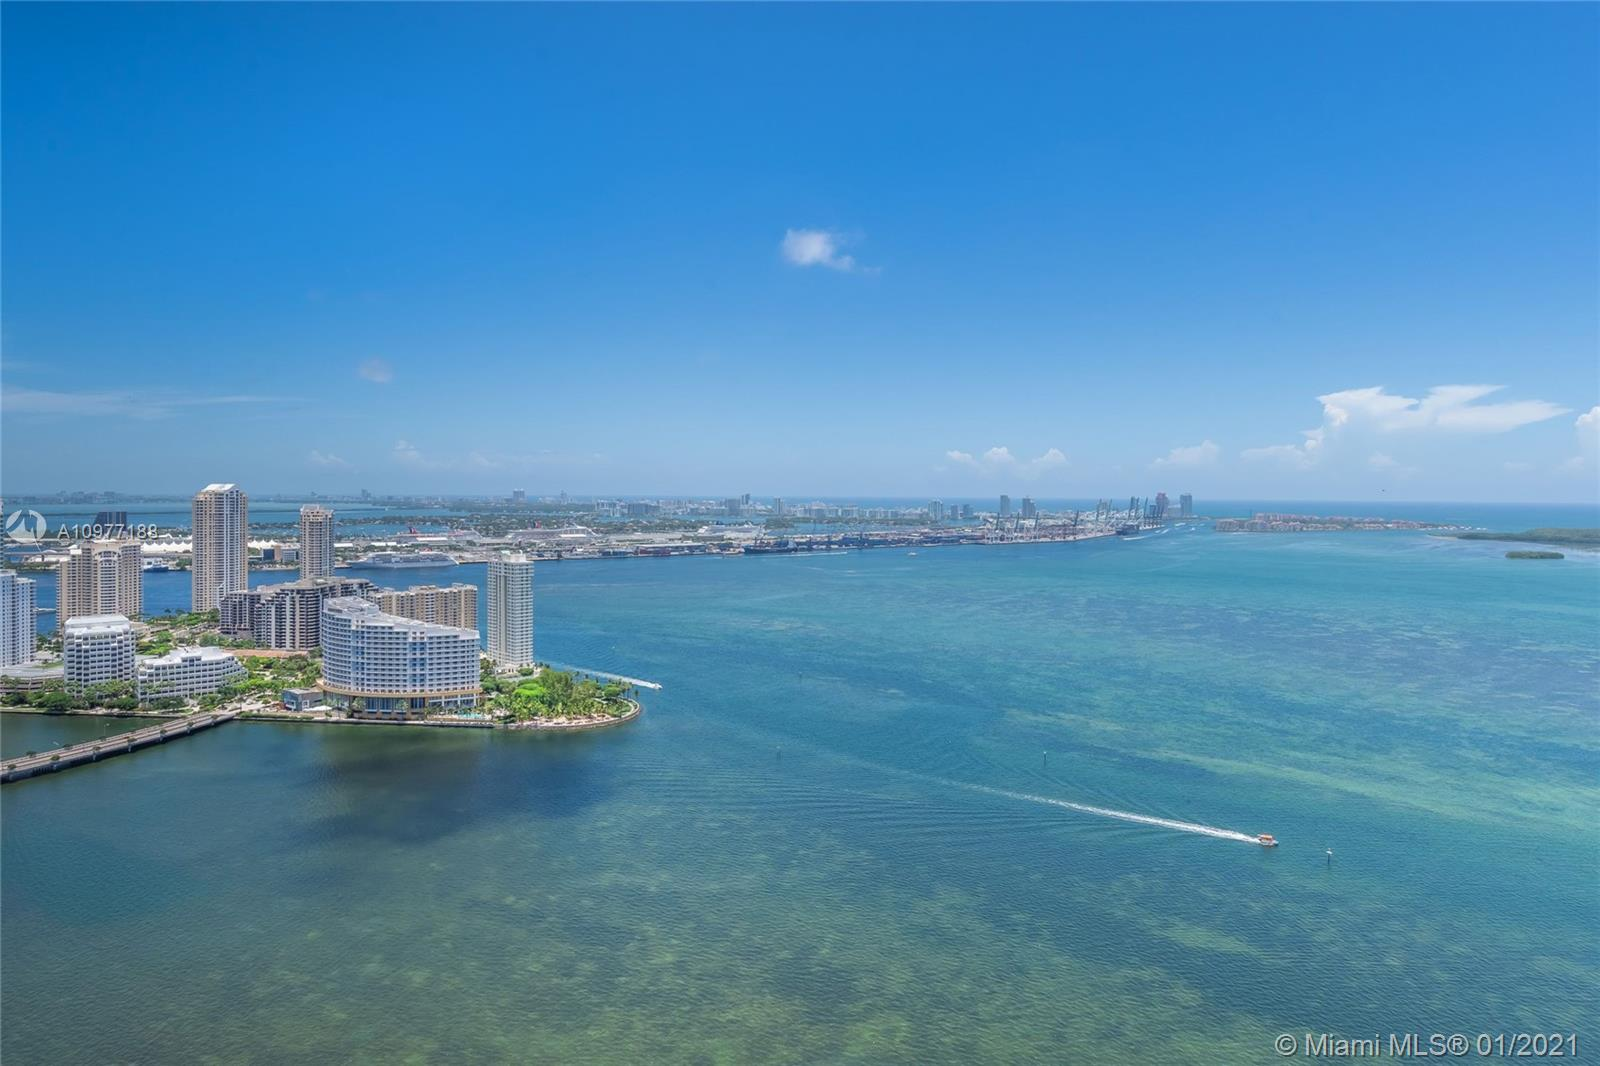 Miami  Future Home , Enjoy this Direct Water view from the 30ths floor ,  extraordinary unit S.E Location overlooking the Bay.  A True Residence over 1730 sqft, 2 bedroom + Den, 3 full Bathroom. come and experience owning  this 5 star living at Jade.  Great for investors start receiving income - ***** unit is rented for 2 years started feb 2021